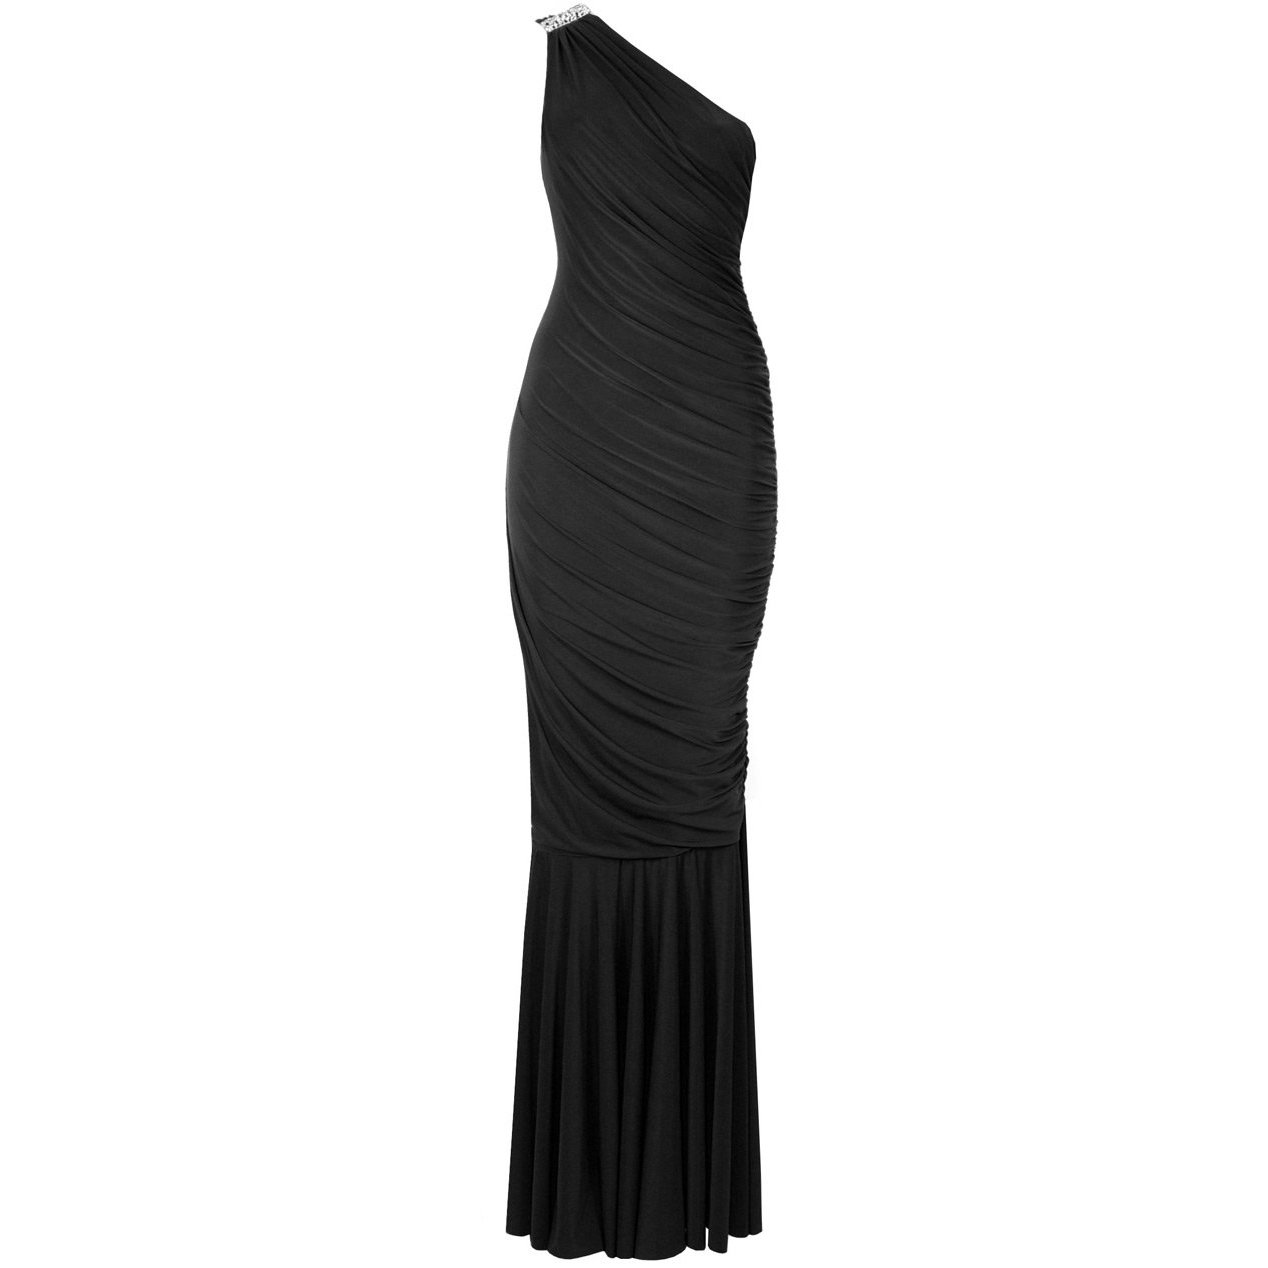 WOMENS NEW BLACK ONE SHOULDER GRECIAN LONG EVENING FISHTAIL MAXI PROM GOWN DRESS UK 12-14, US 8-10